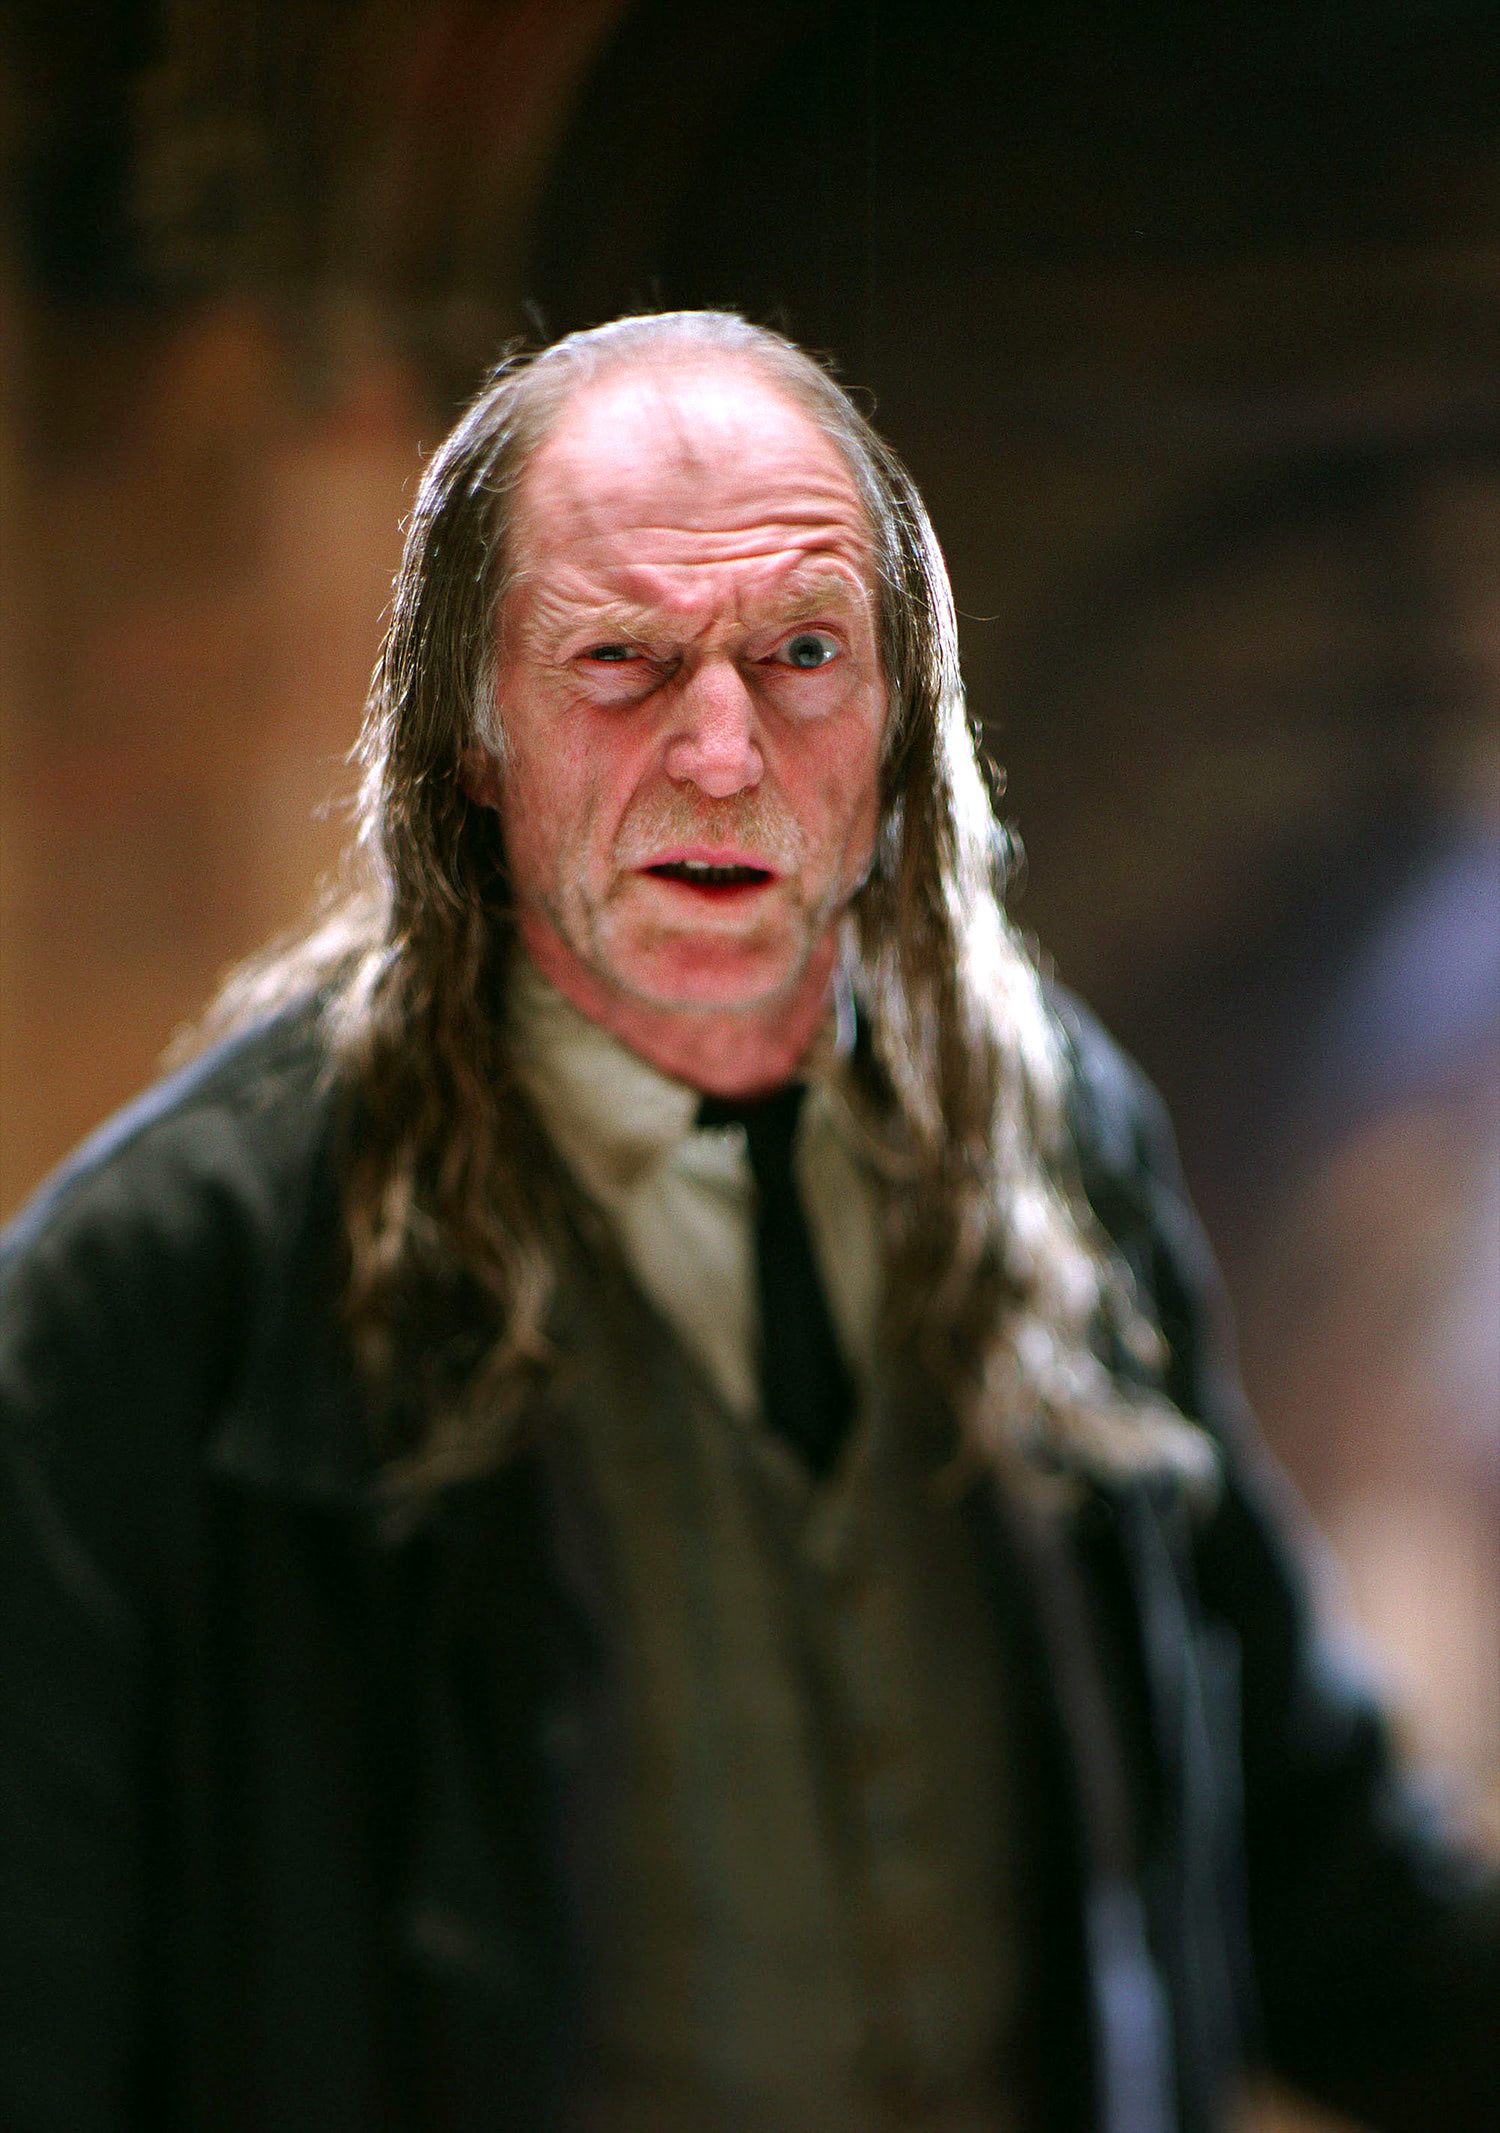 Portrait of Argus Filch